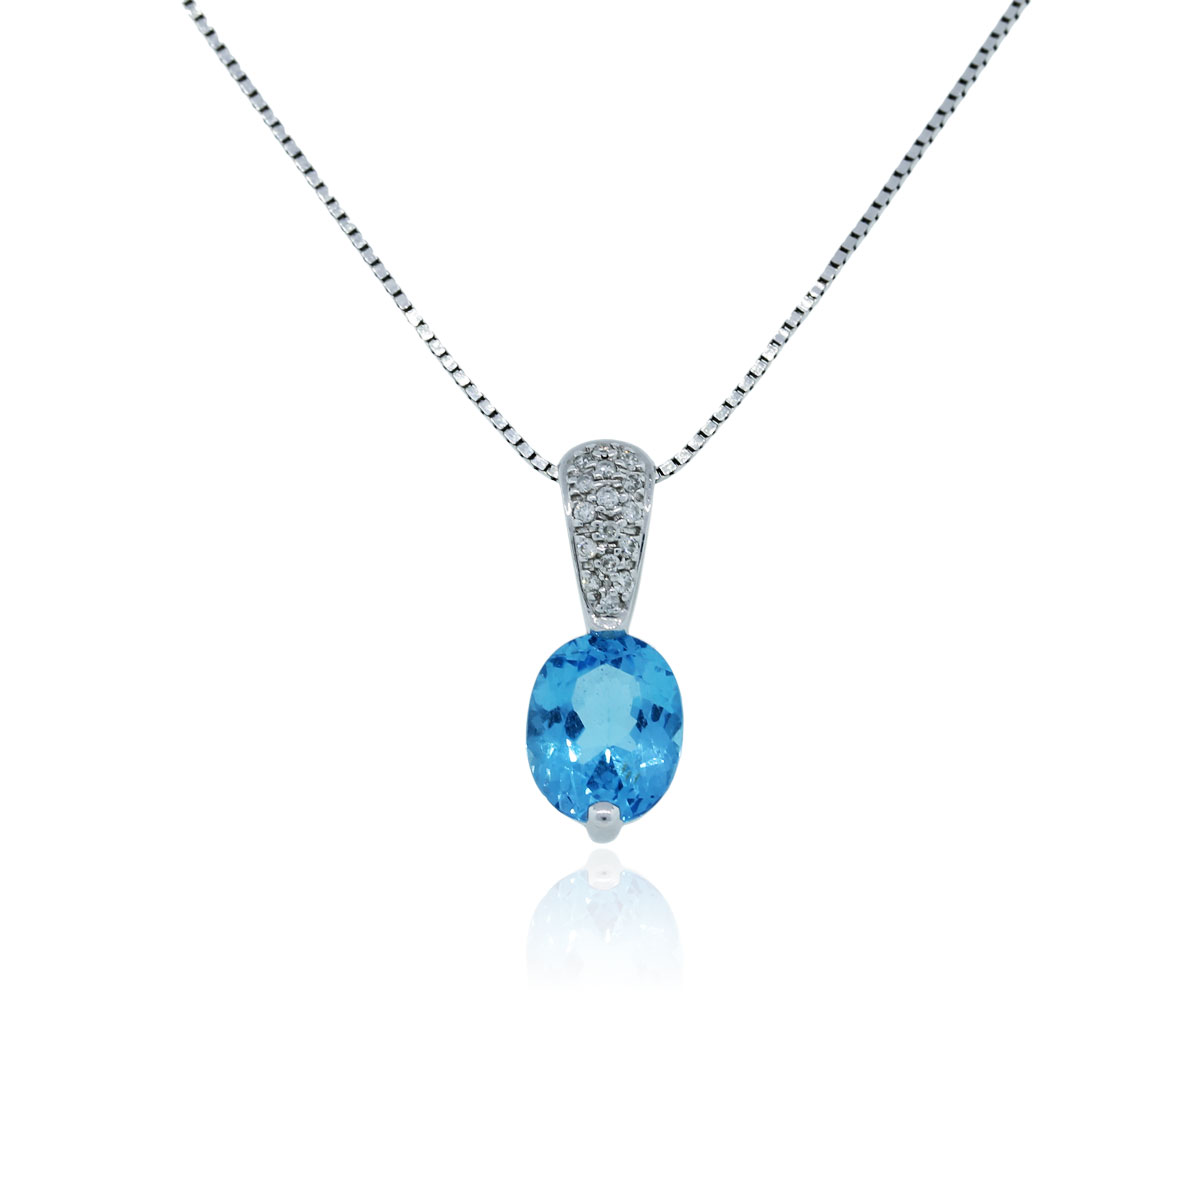 14k white gold blue topaz and pendant necklace